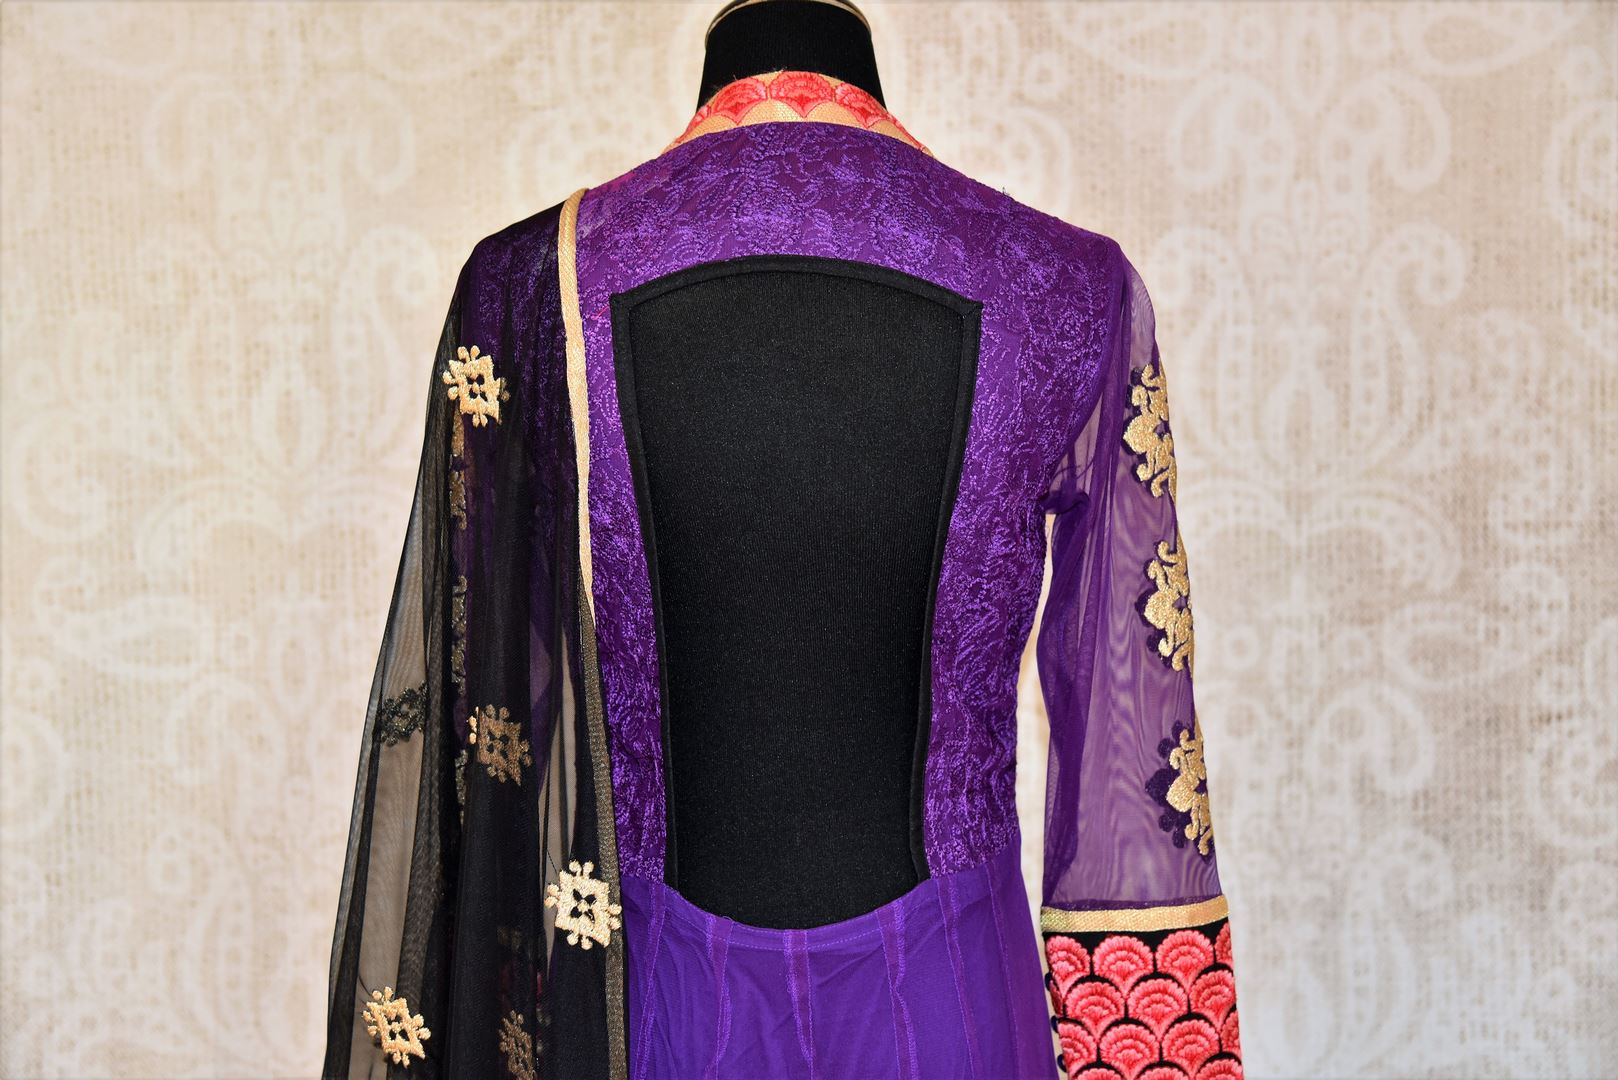 Buy purple embroidered Anarkali suit with churidaar online in USA and dupatta from Pure Elegance. Choose from a range of exclusive Indian designer suits, wedding dresses, Anarkali suits in beautiful styles and designs from our Indian fashion store in USA and flaunt your tasteful sartorial choices on special occasions.-back